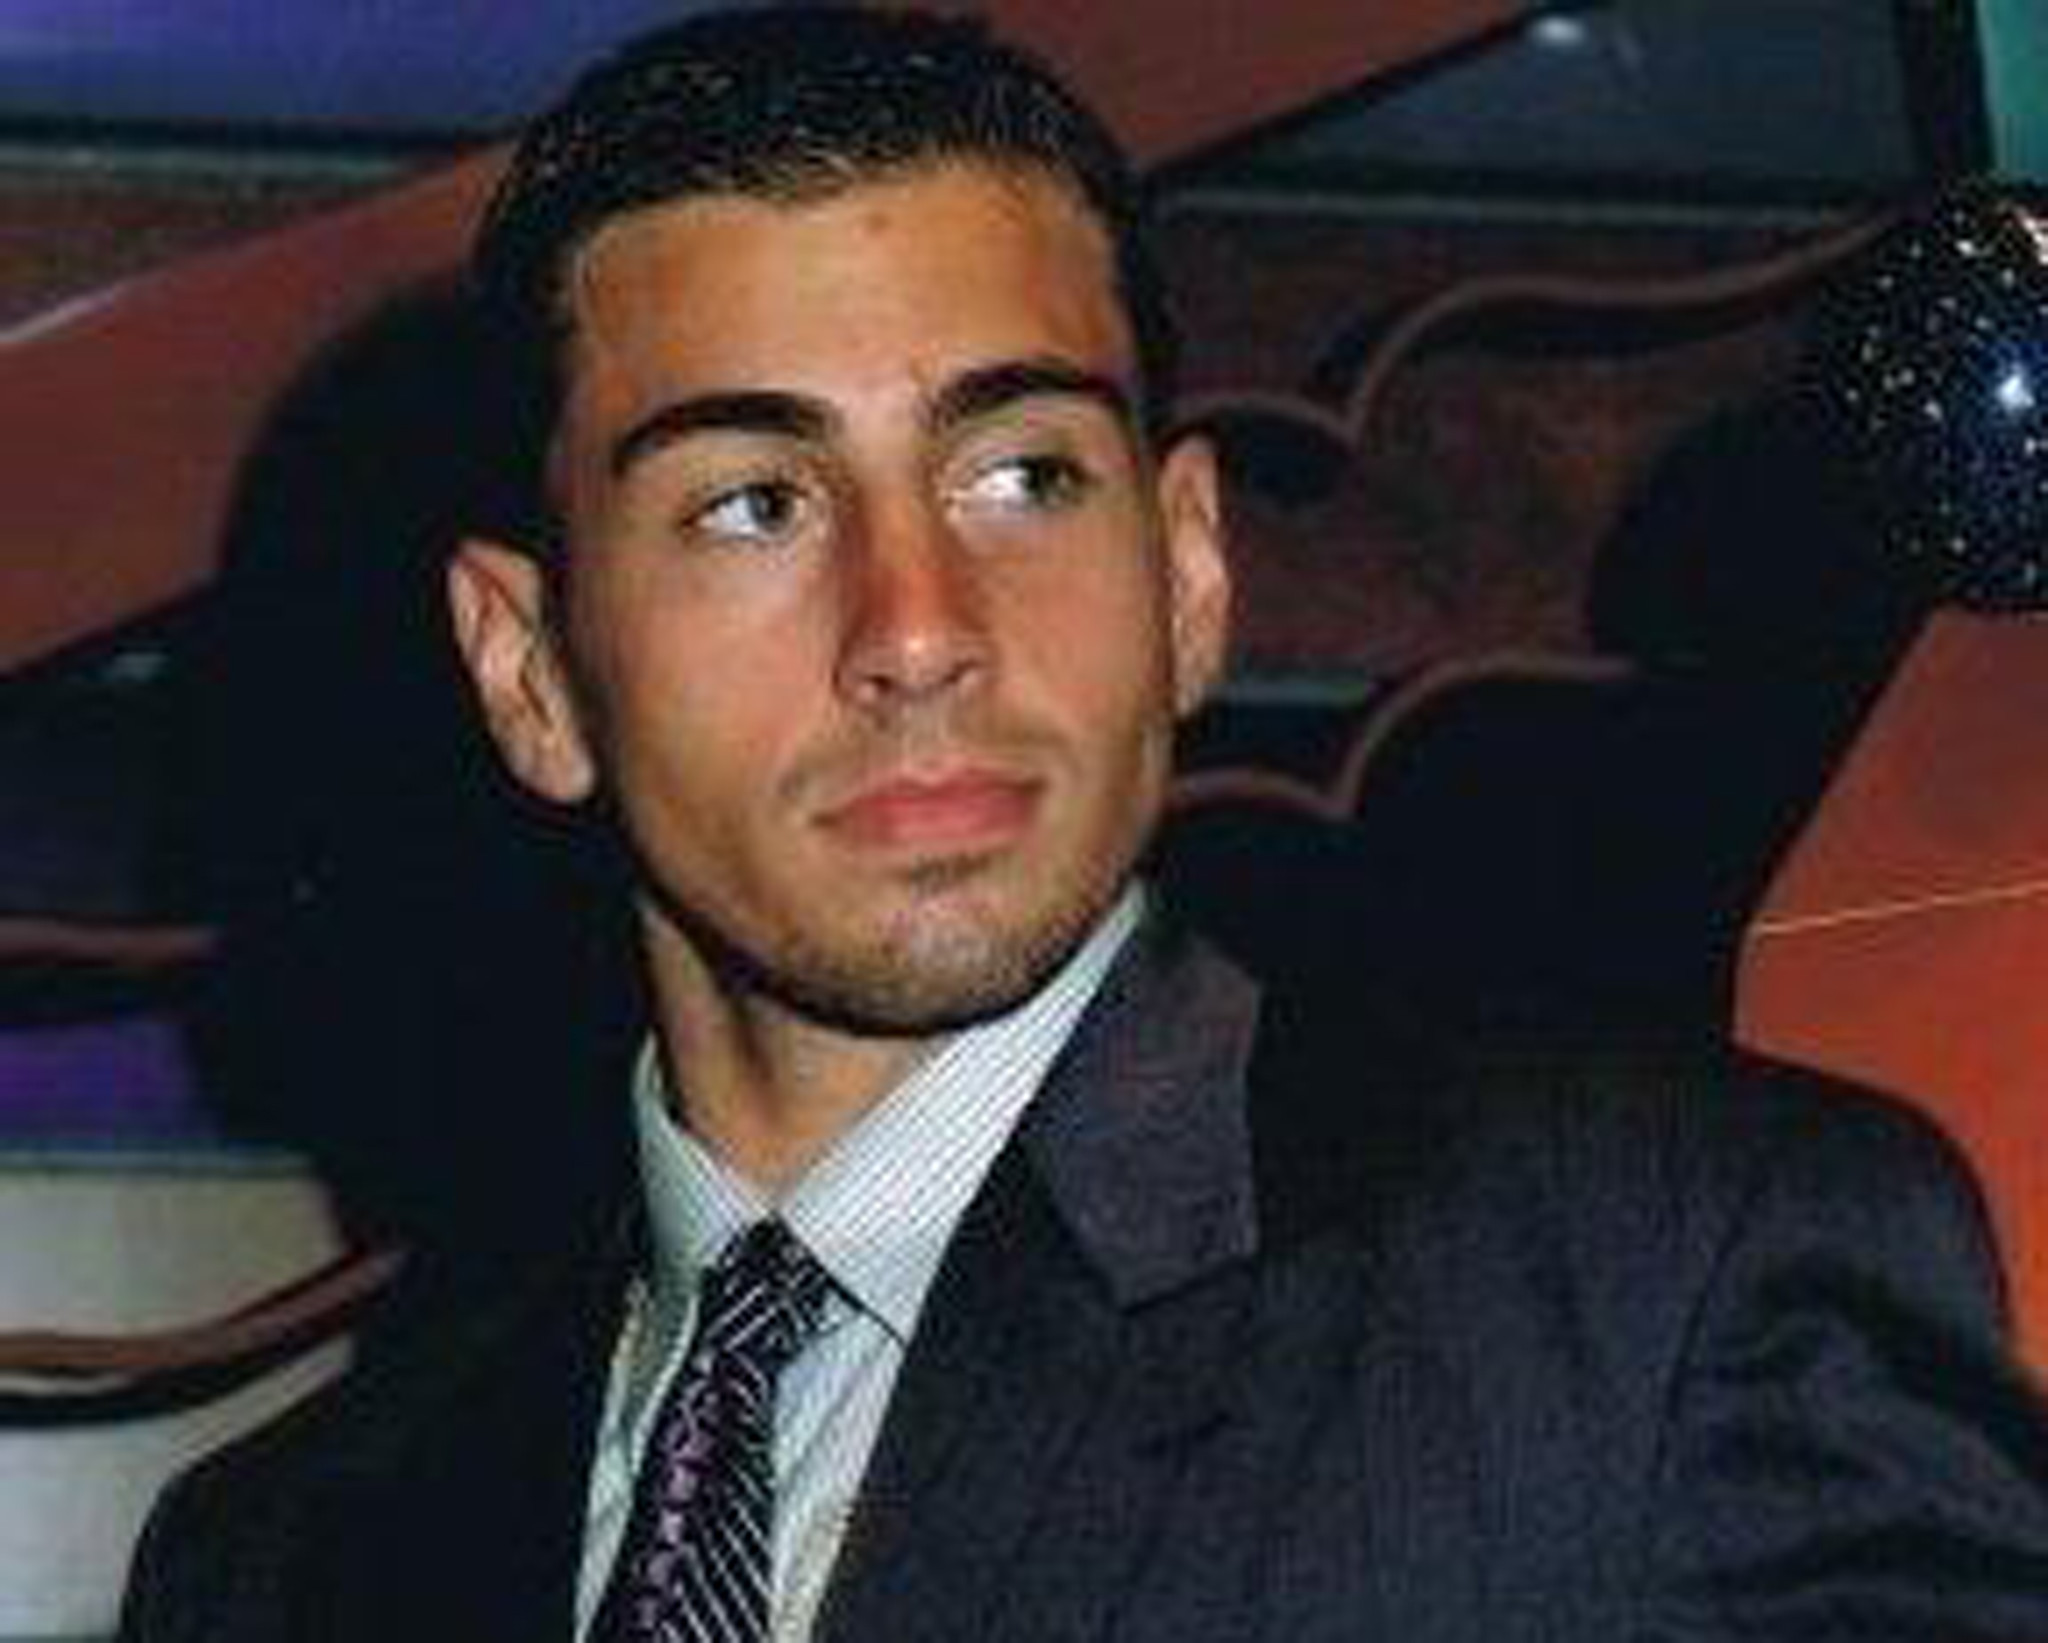 Tribeca man, 29, killed by hit-and-run driver remembered as